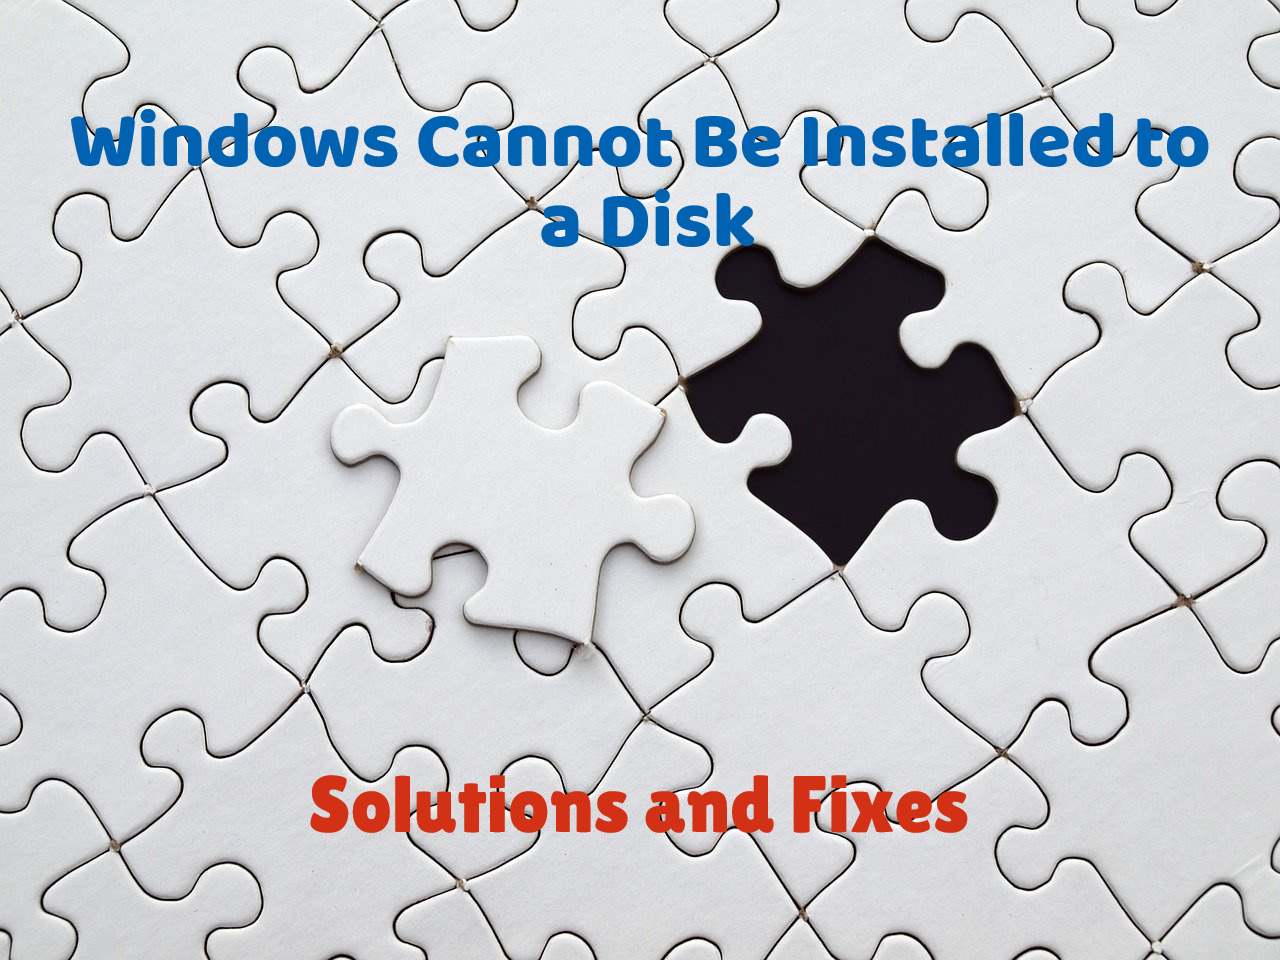 Windows Cannot Be Installed to a Disk — Simple Working Solutions and Fixes